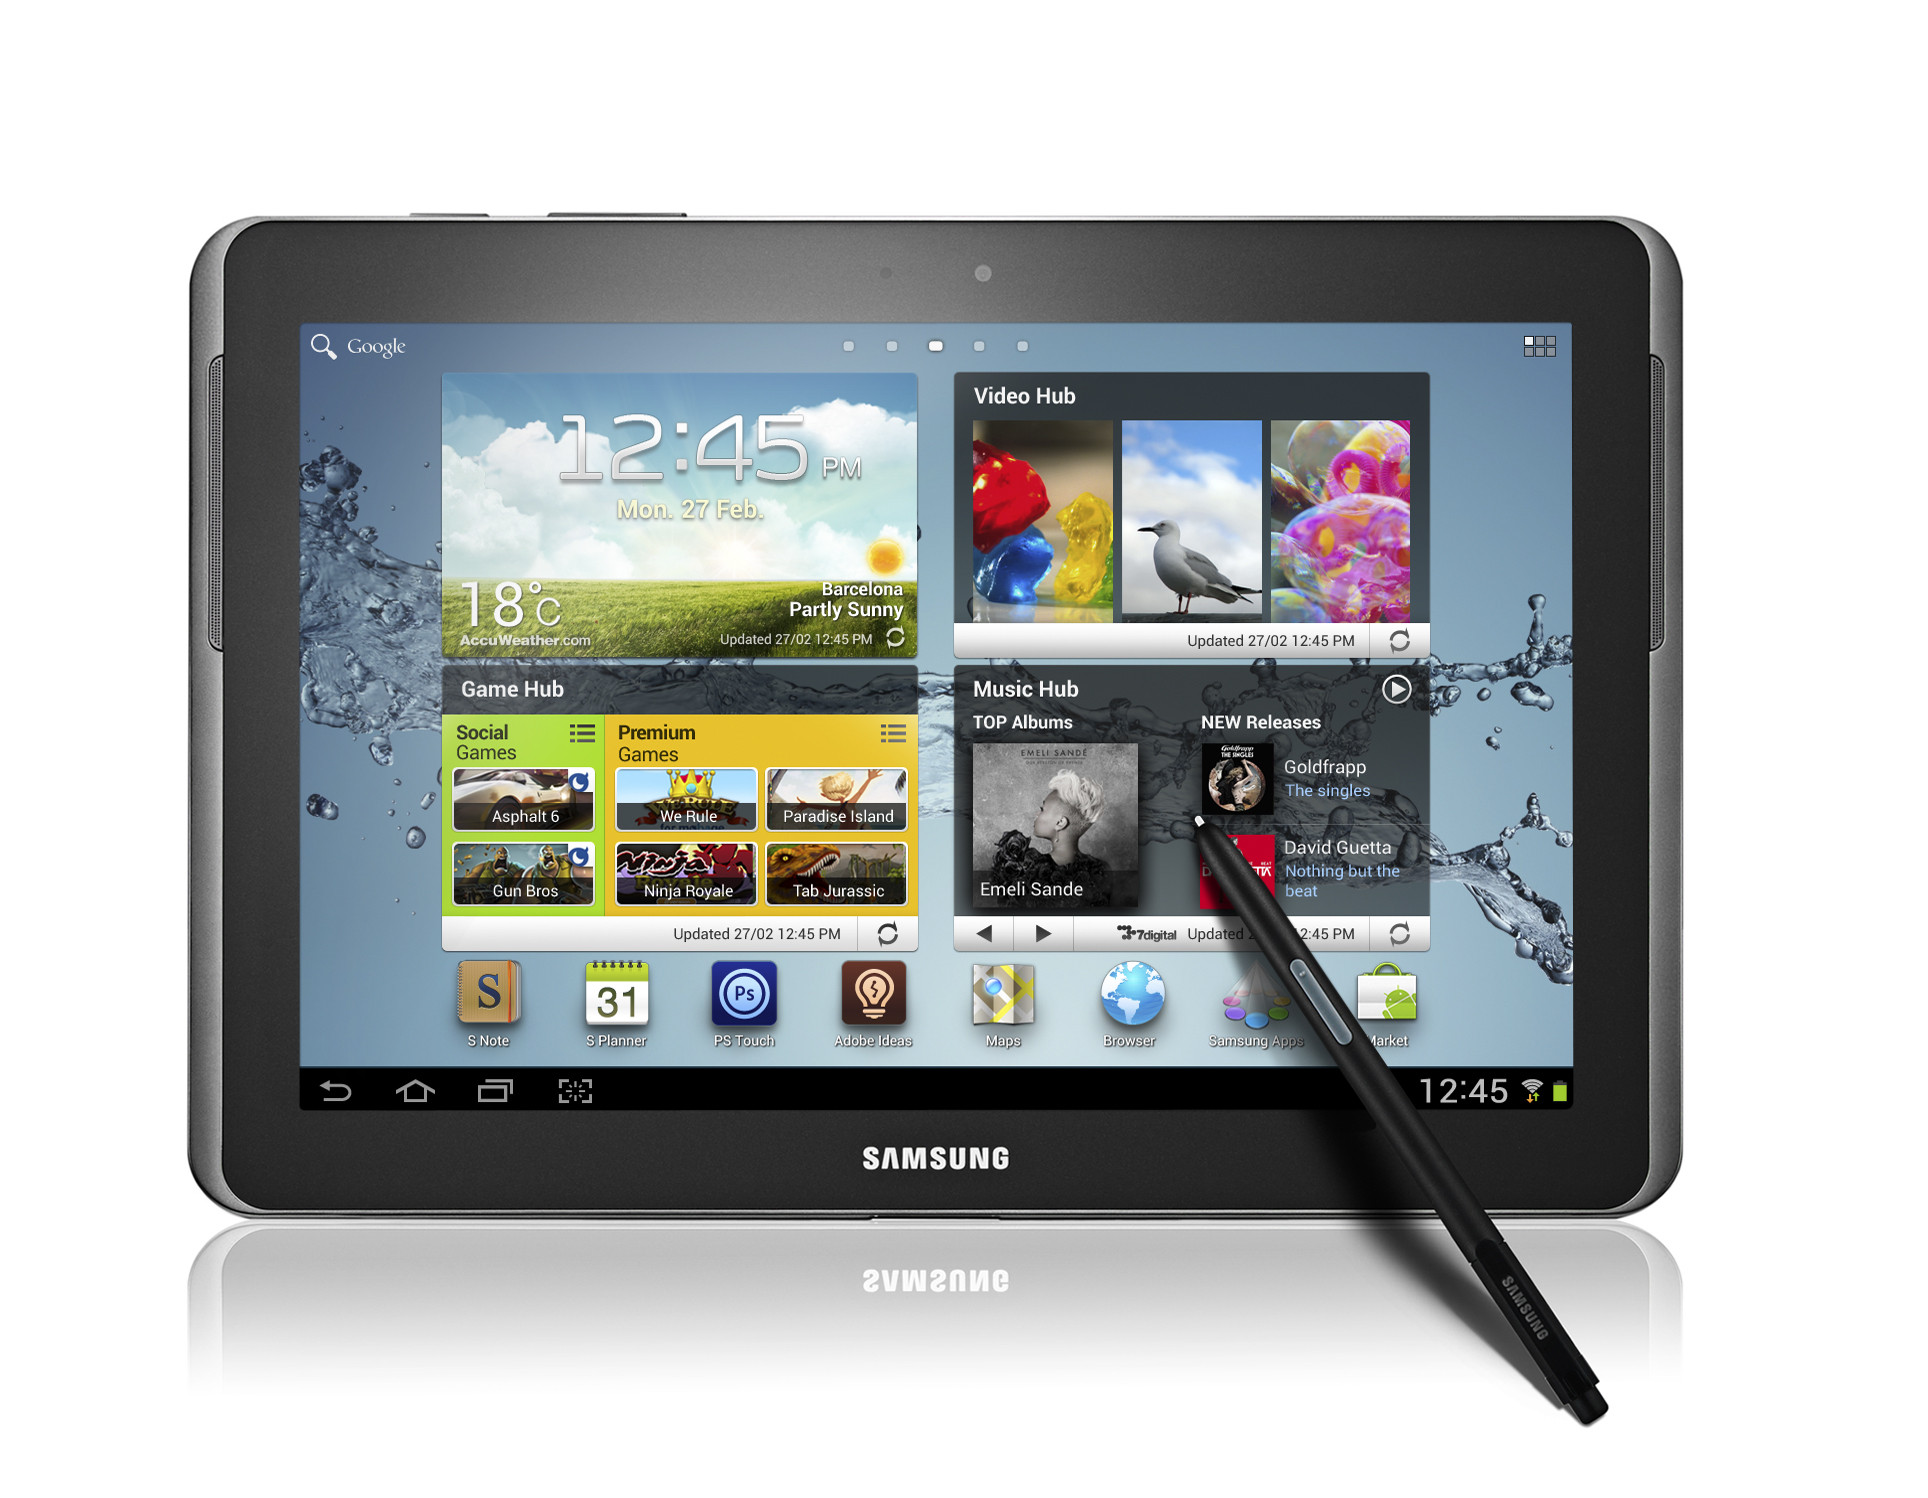 Samsung Galaxy Tab A 10.1 Increíble Tablette Samsung Galaxy 10 1 Edition 2014 Tablette Of Samsung Galaxy Tab A 10.1 Maravilloso Επίσημη ανακοίνωση για το Samsung Galaxy Tab A 10 1 2016